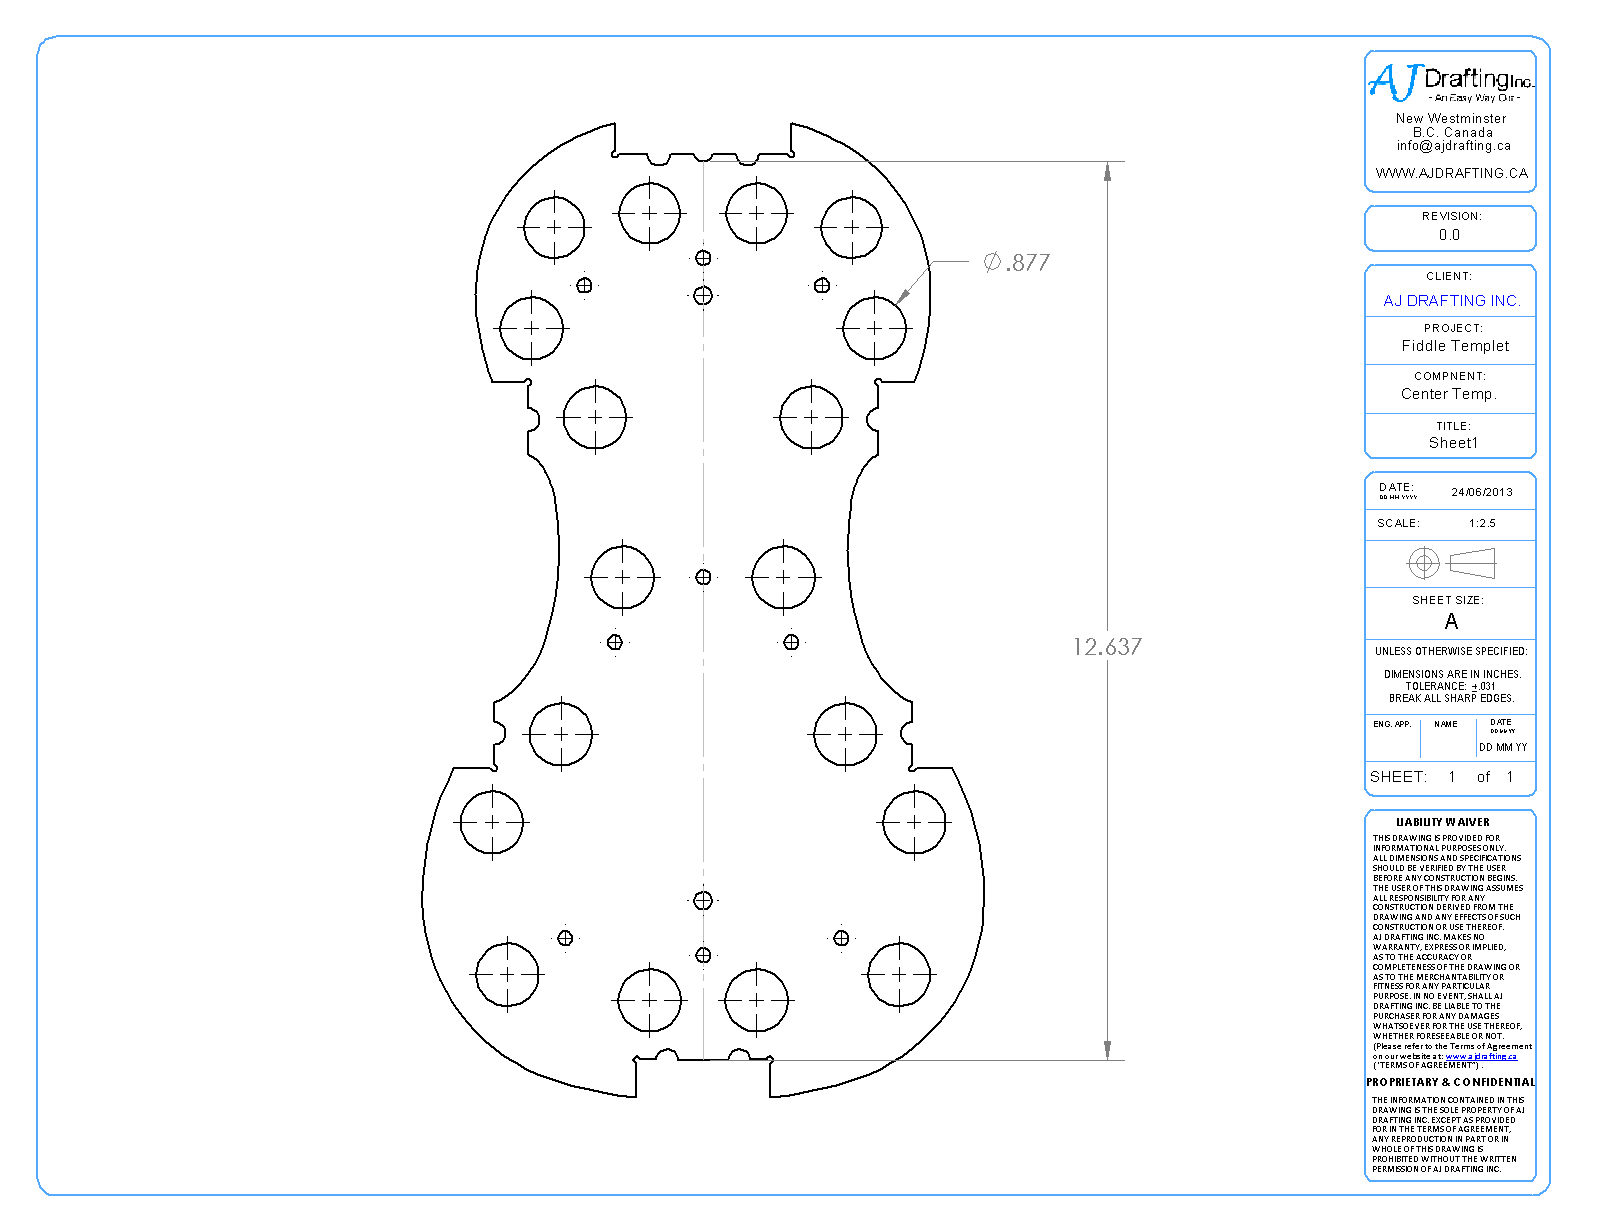 Fiddle Bottom Mold DWG.